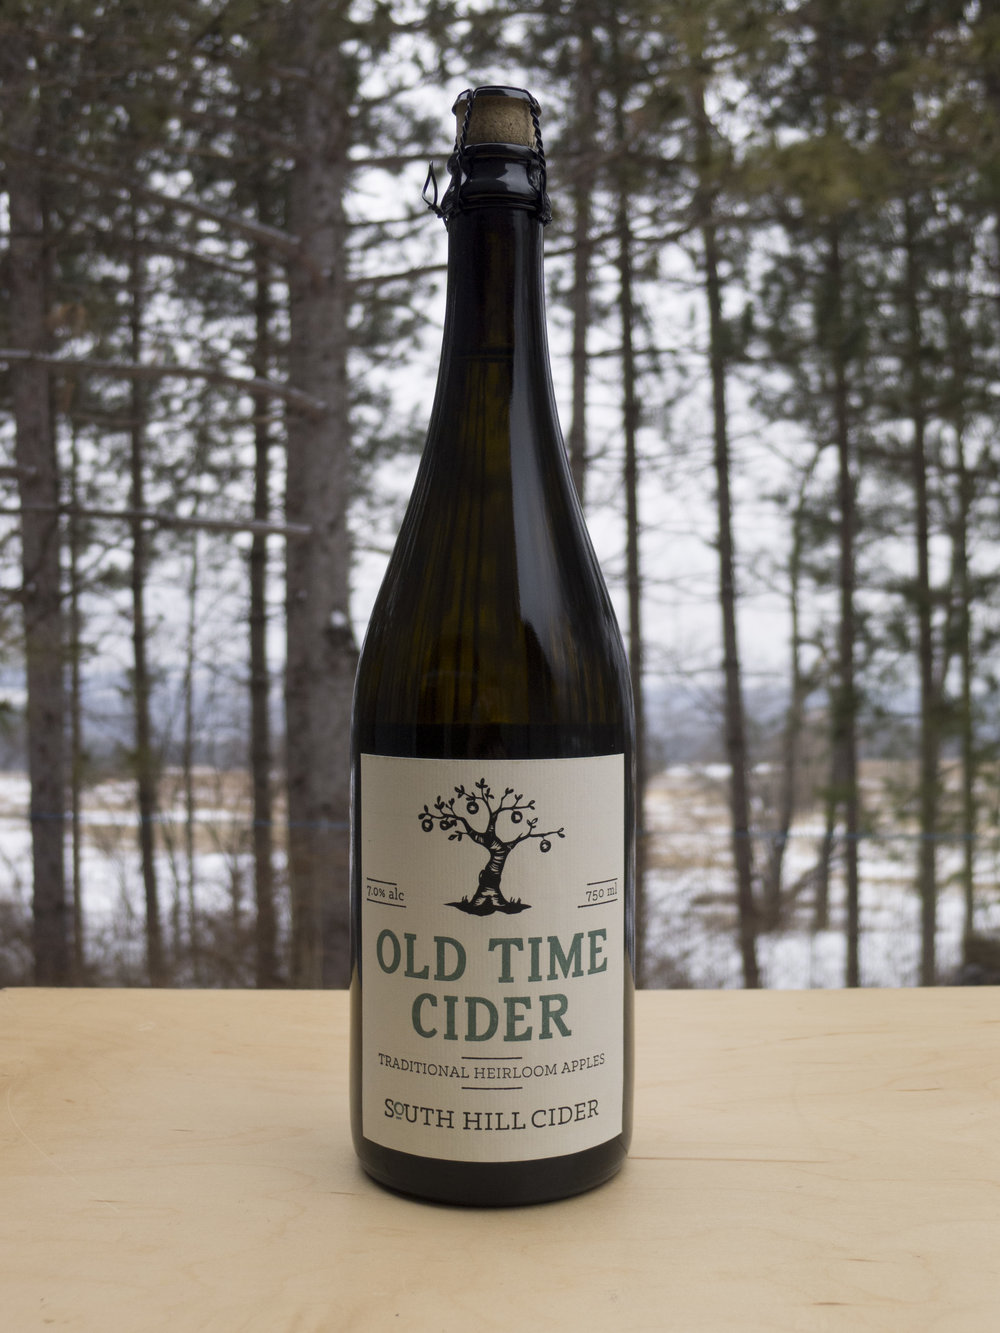 South Hill Cider - Old-Time Cider - Fingerlakes